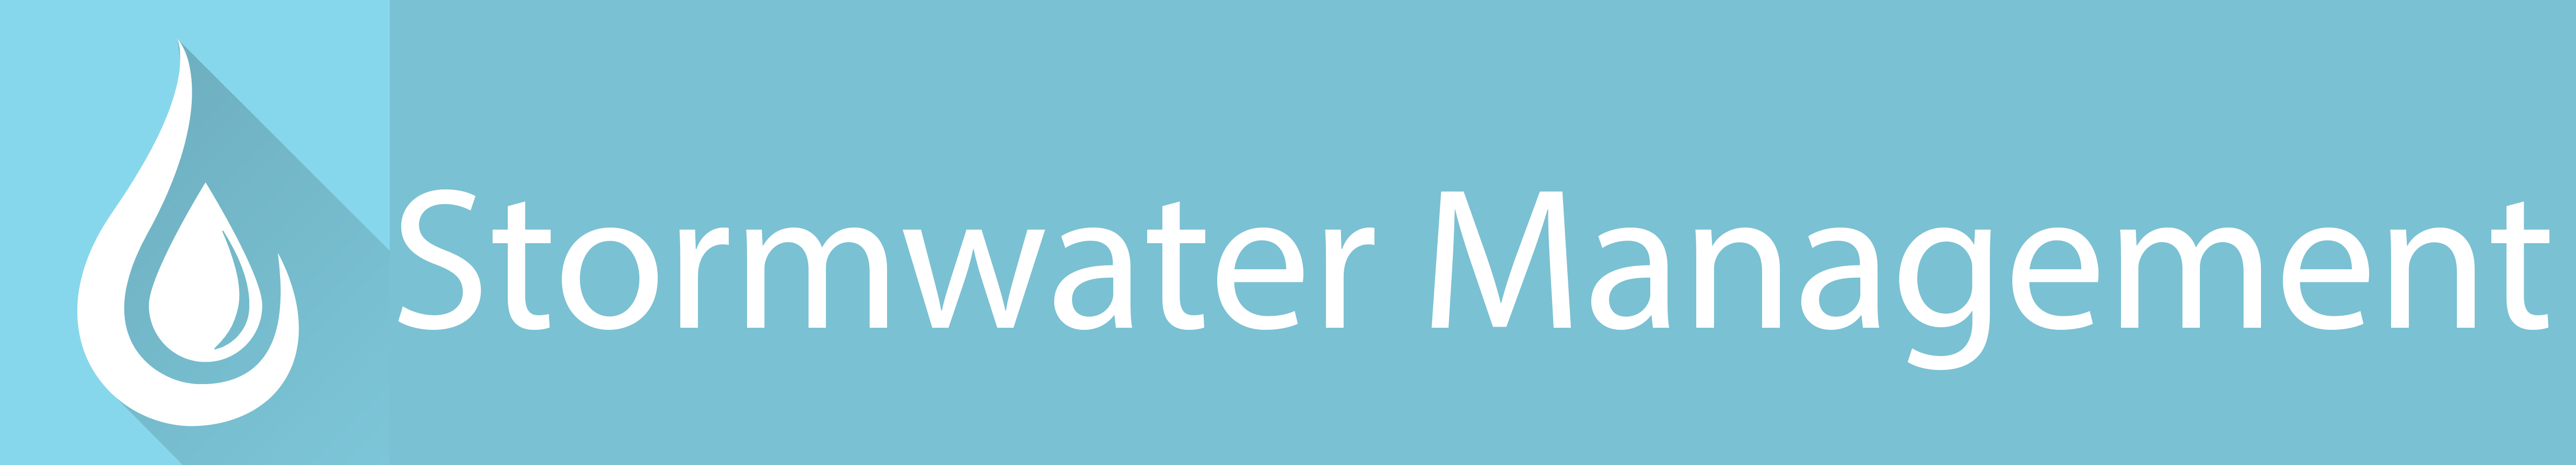 Stormwater Management Page